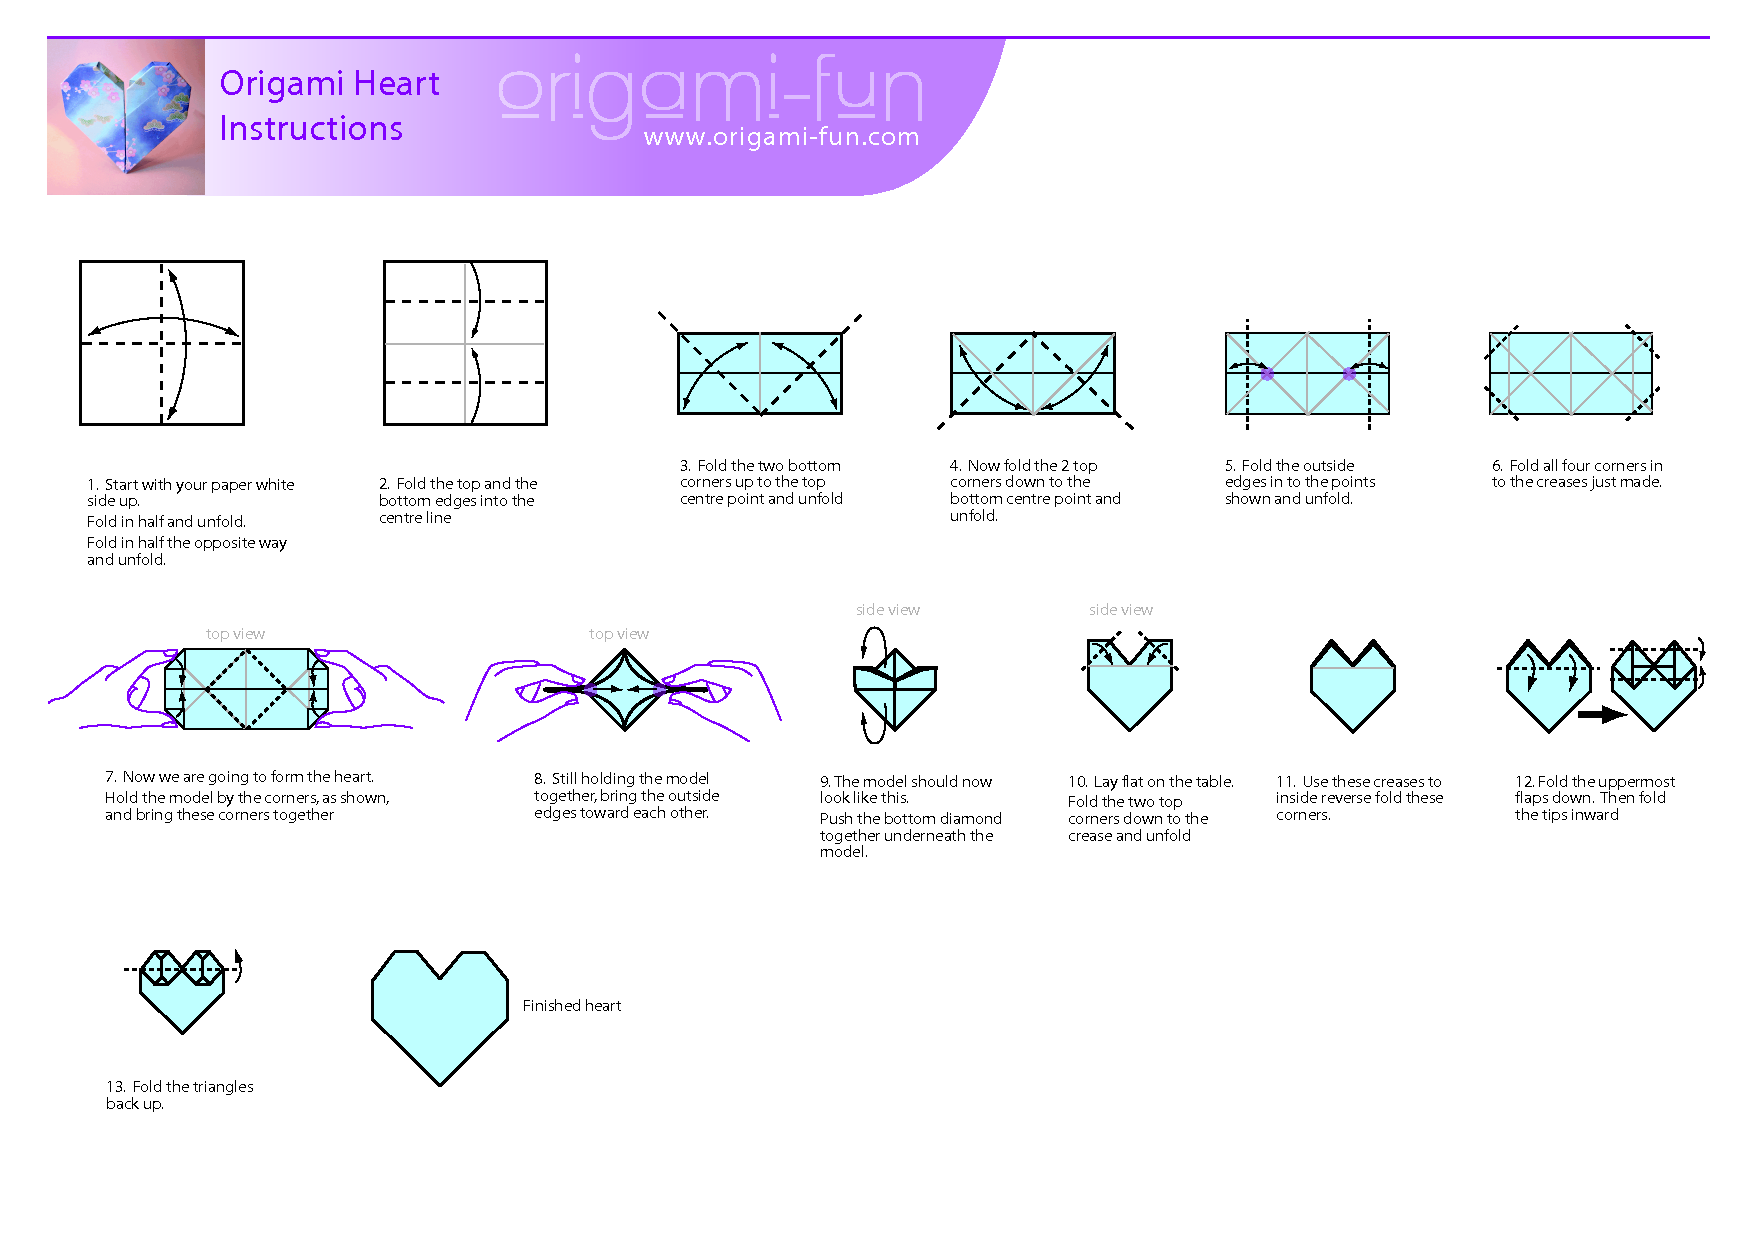 3d origami heart folding instructions | askervani.com ... - photo#12